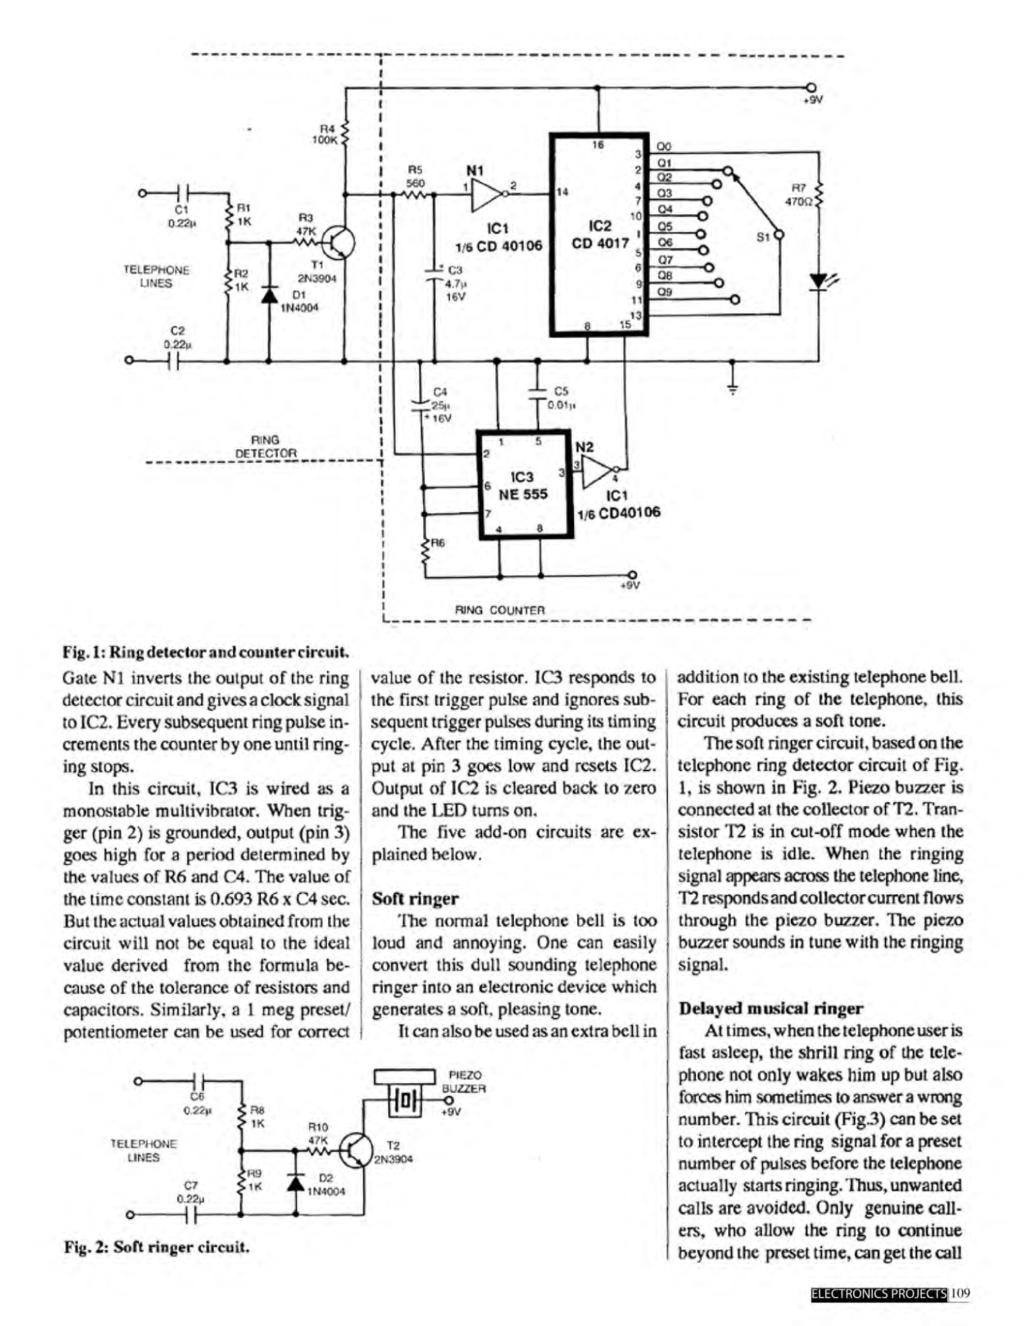 A Compilation Of 102 And Circuit Ideas For Construction Projects Clock Pulse Generator With Cd4049 Diagram 1 Ring Delector Counter Gate N1 Inverts The Output